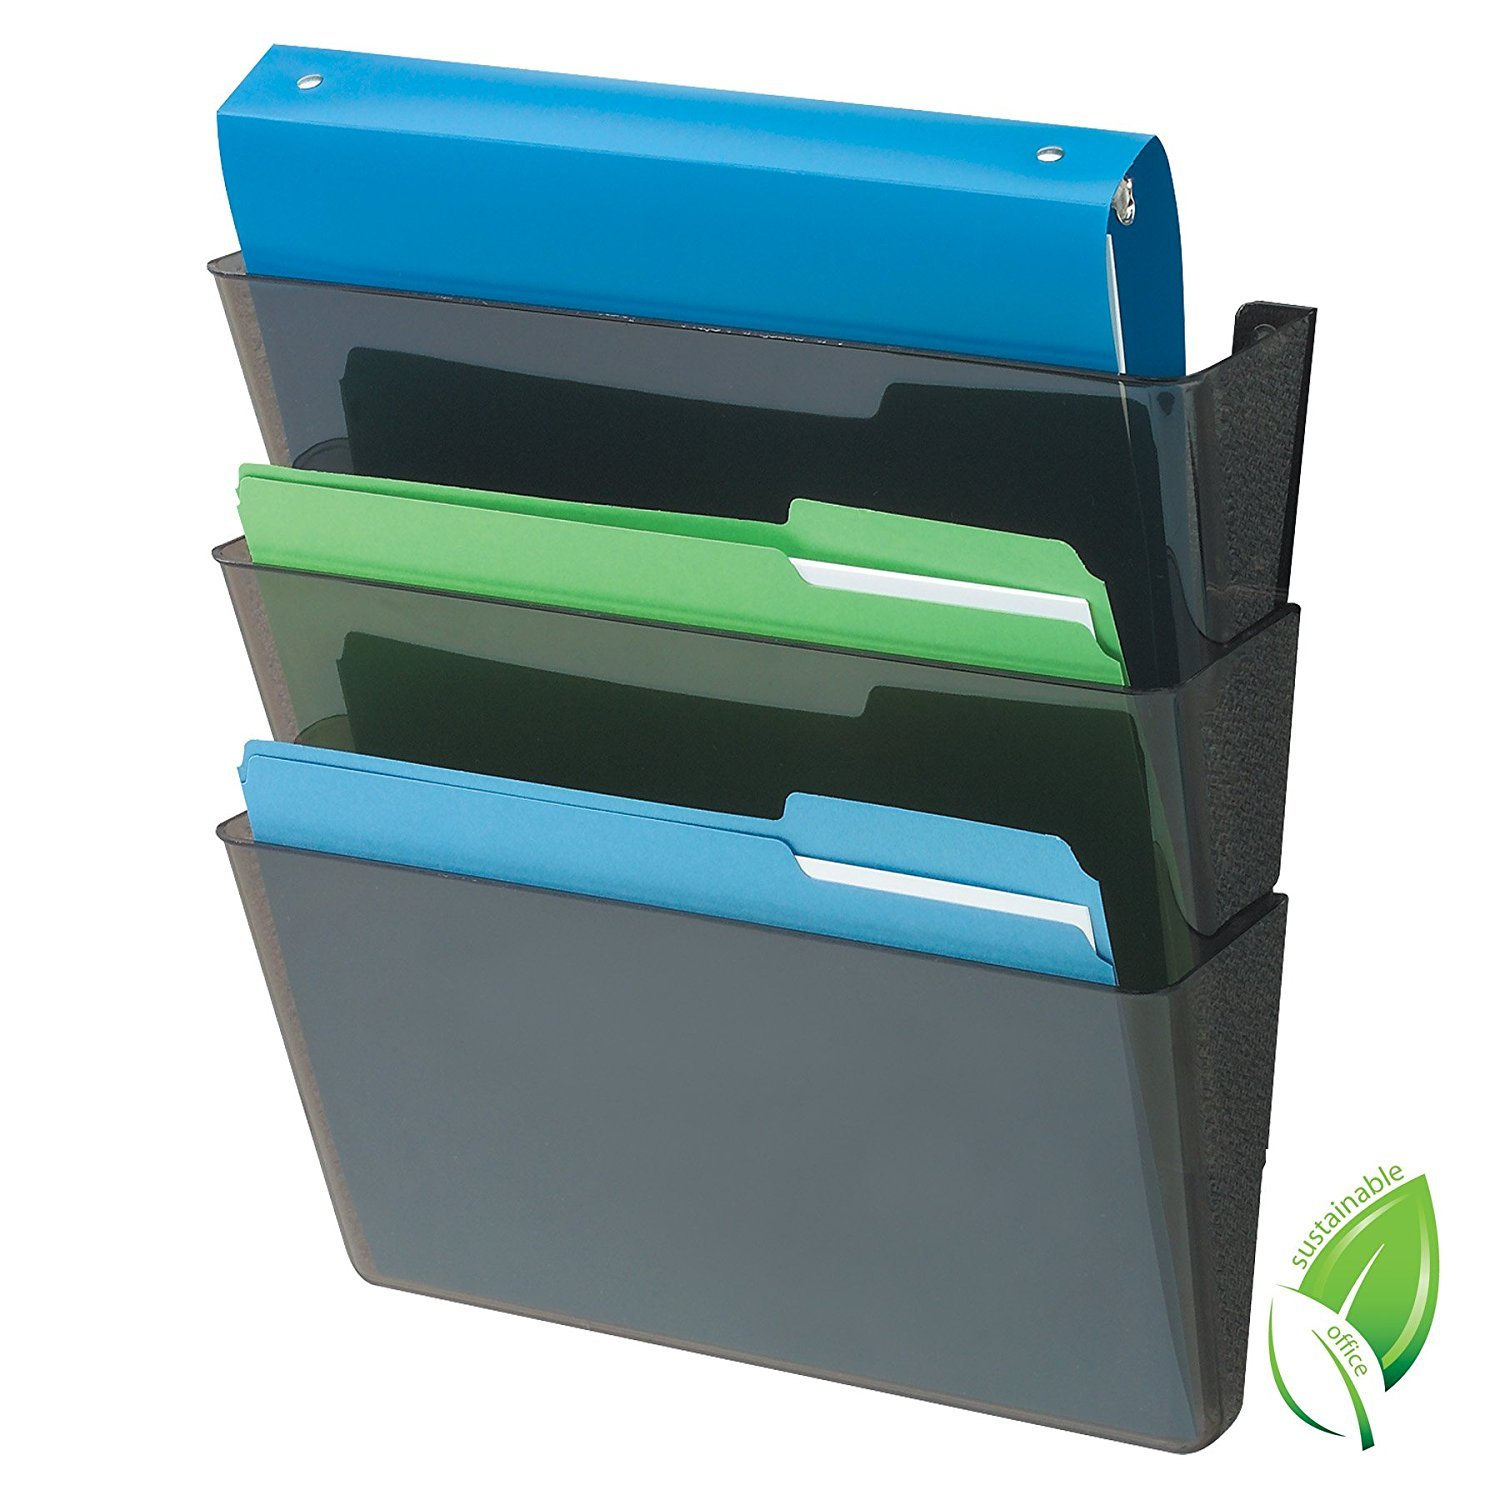 Deflecto Sustainable Office DocuPocket, Recycled Content, Wall File Organizer, Stackable, Letter Size, Black, Set of 3, 13''W x 7''H x 4''D (4 Sets of 3)